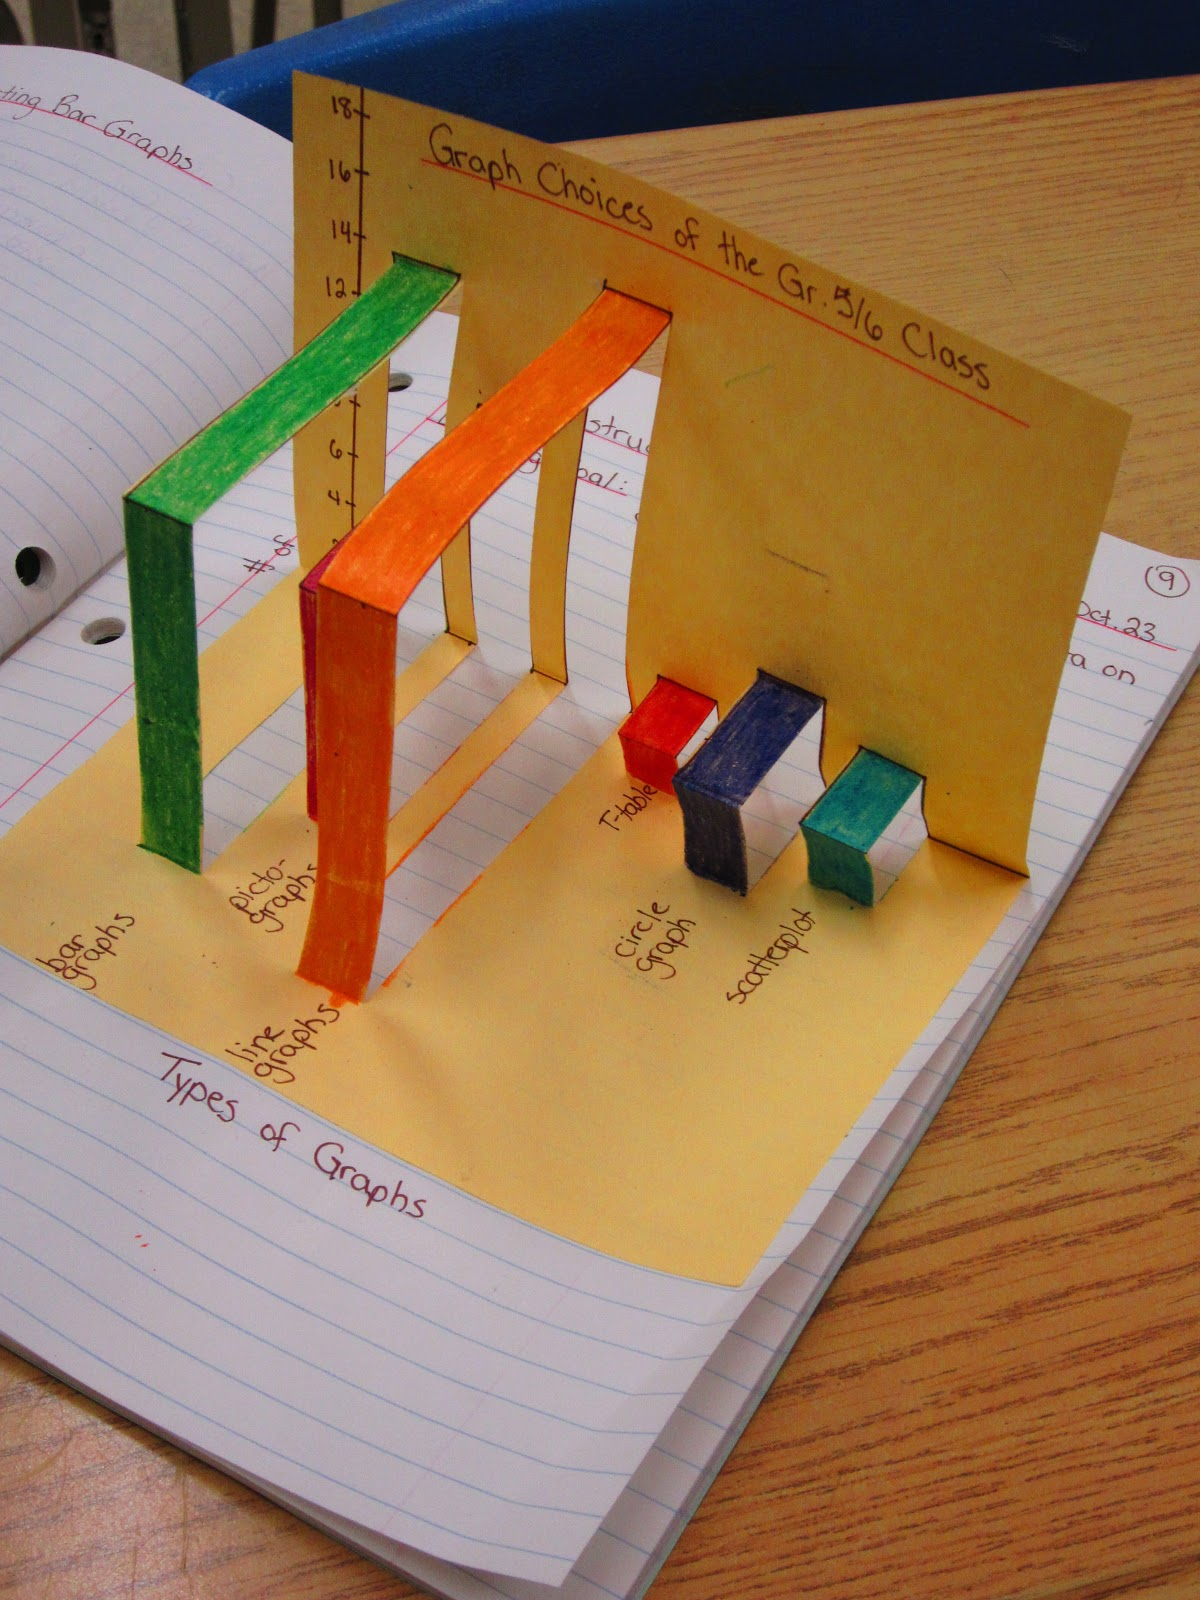 Dyscalculia Treatment Accommodations For School And Work Dyscalculia